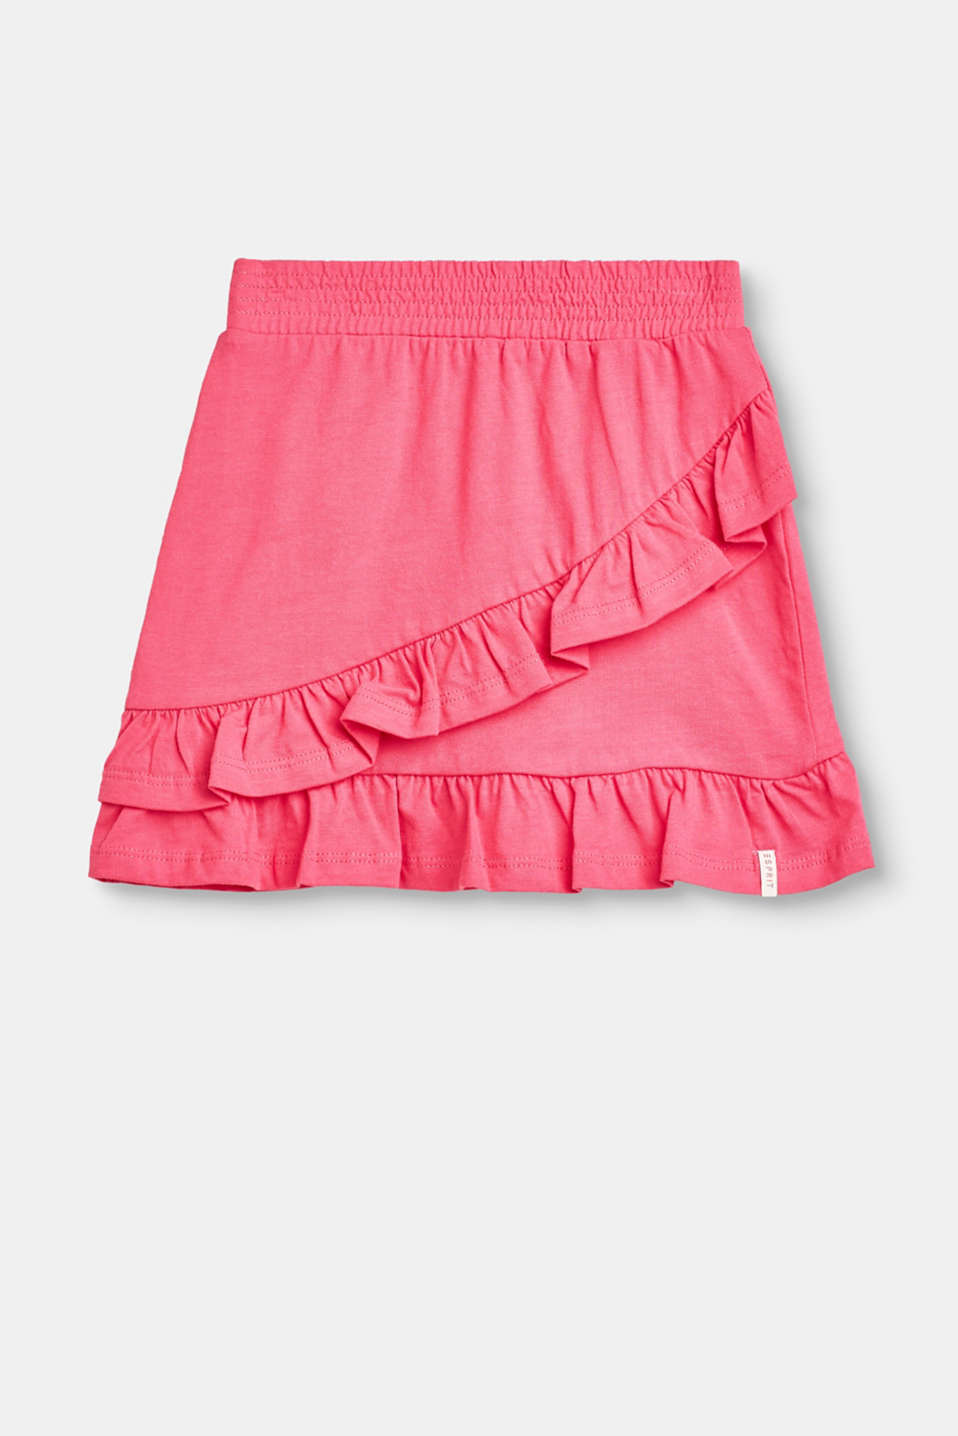 Esprit - Cotton skirt, elasticated waist + flounces